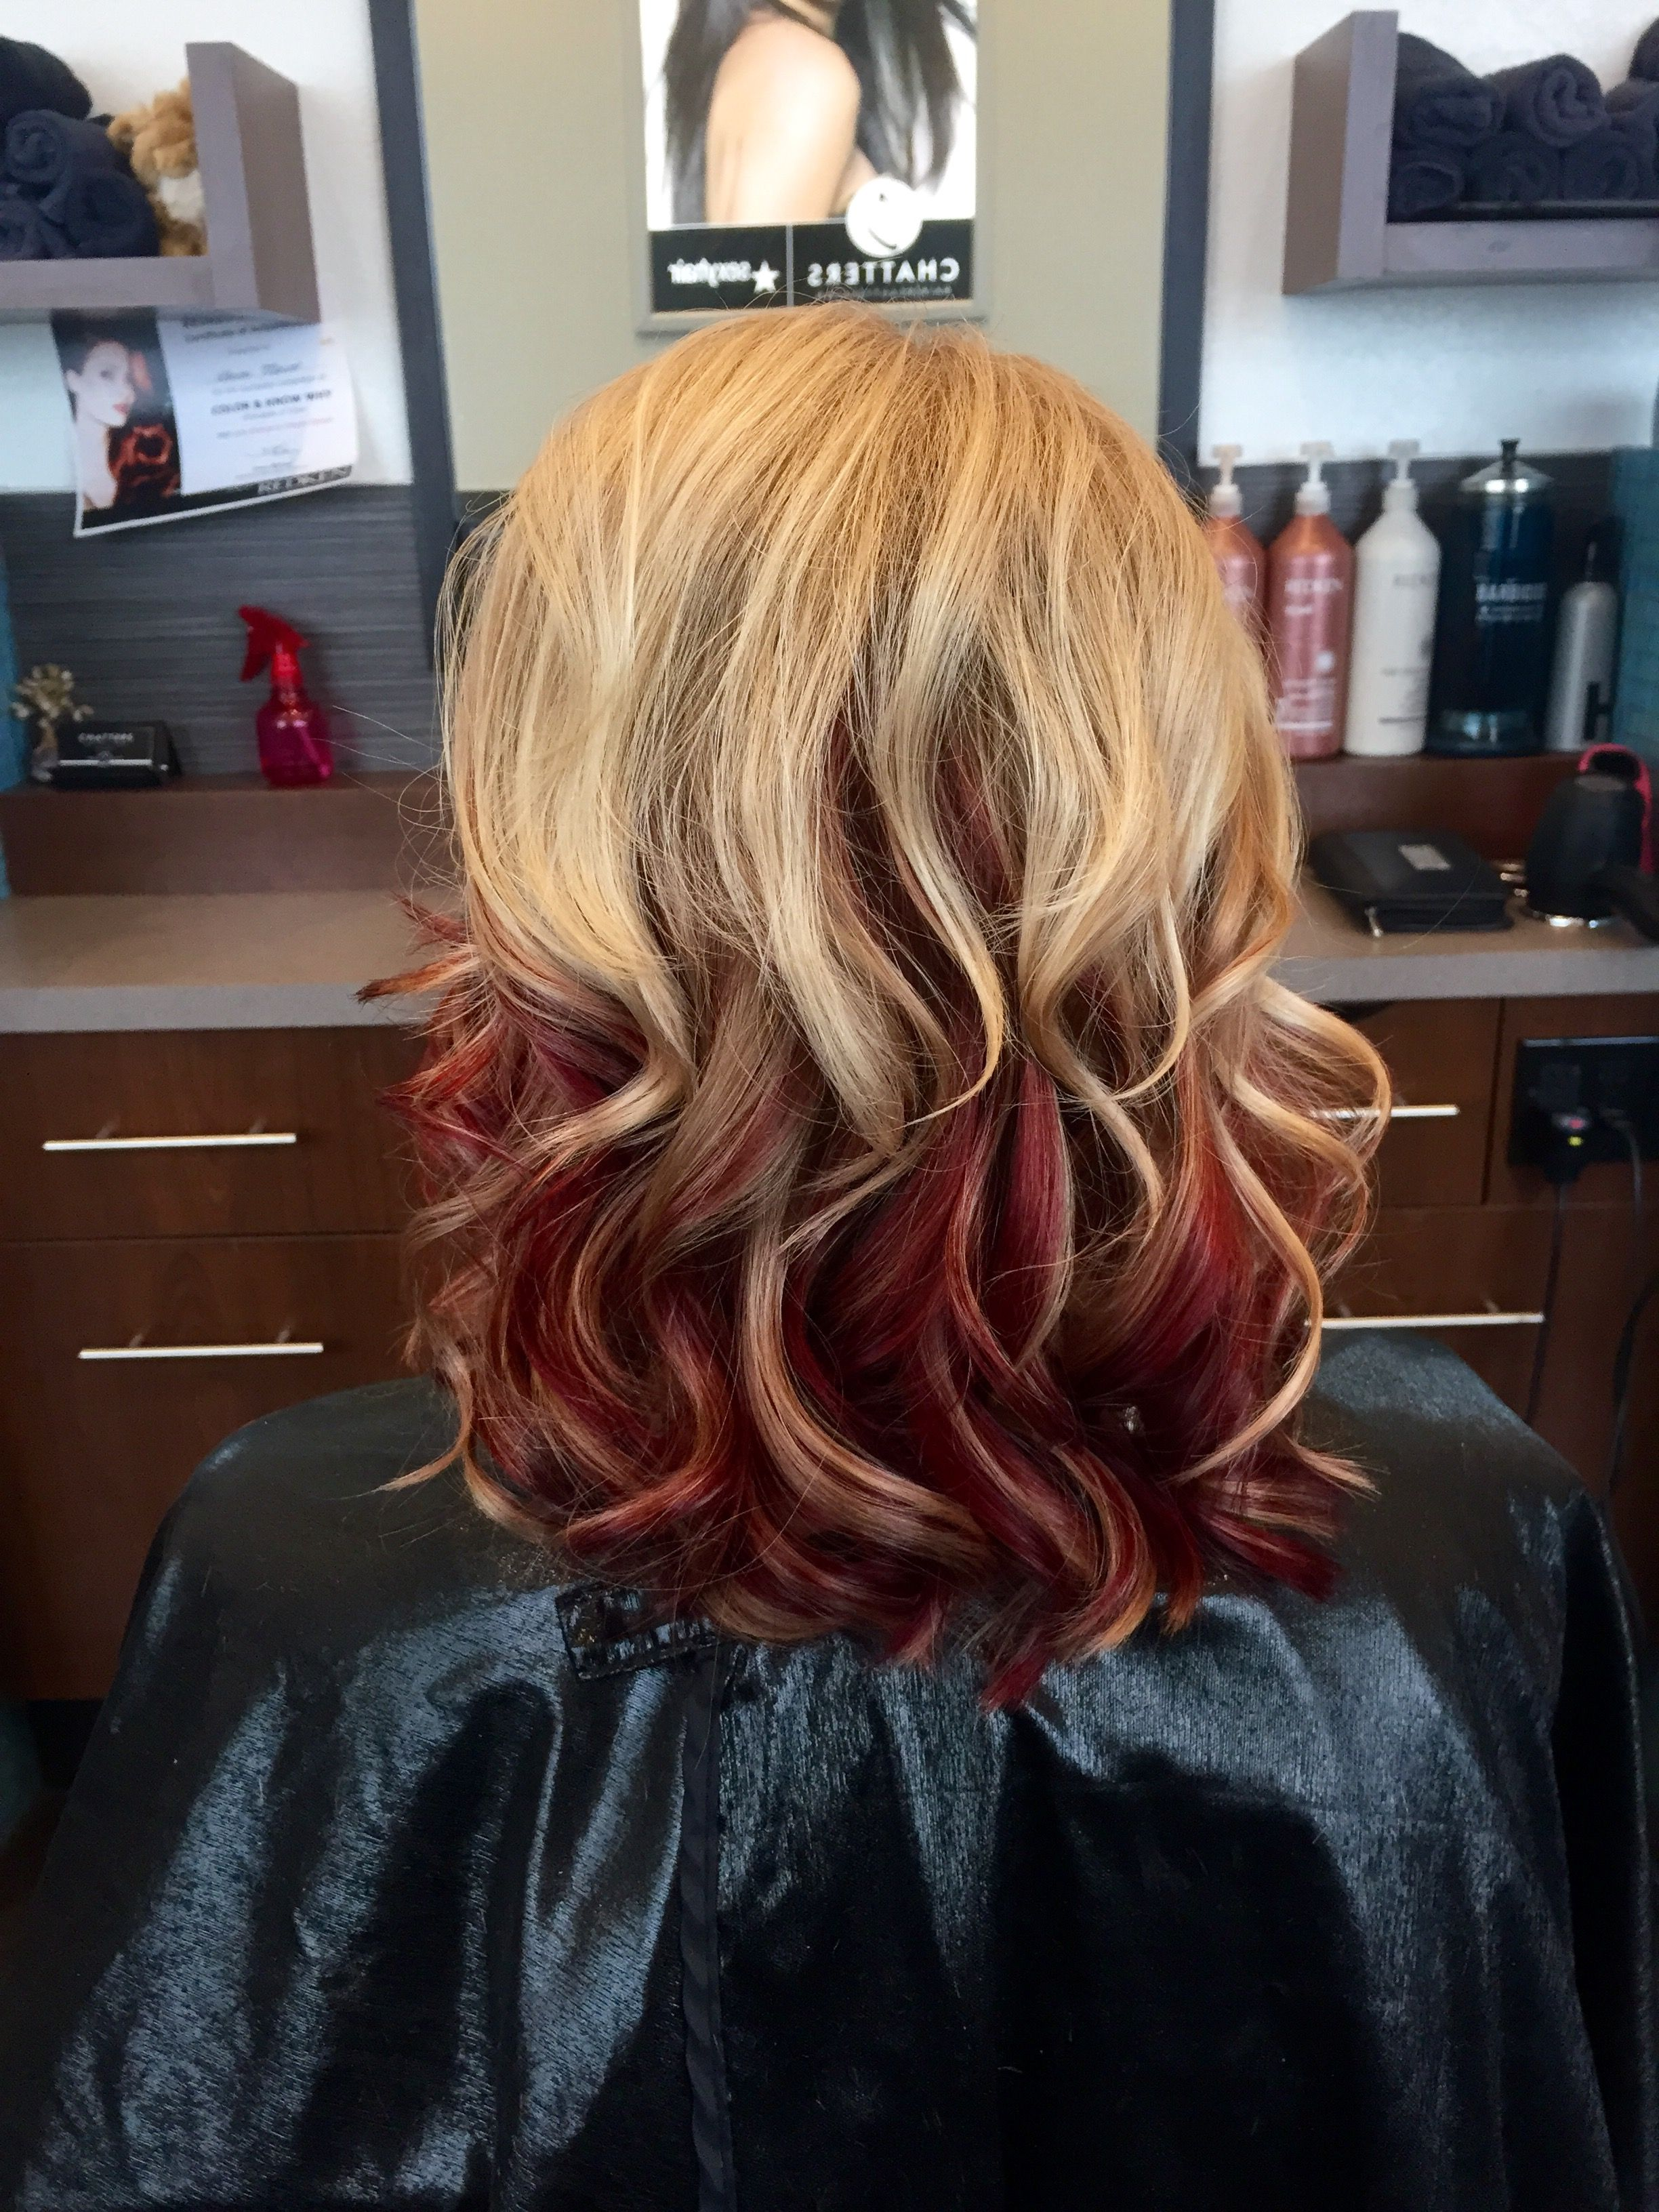 Natural Blonde To Red Ombre Curls Ombre Hair Blonde Red Ombre Hair Hollywood Hair